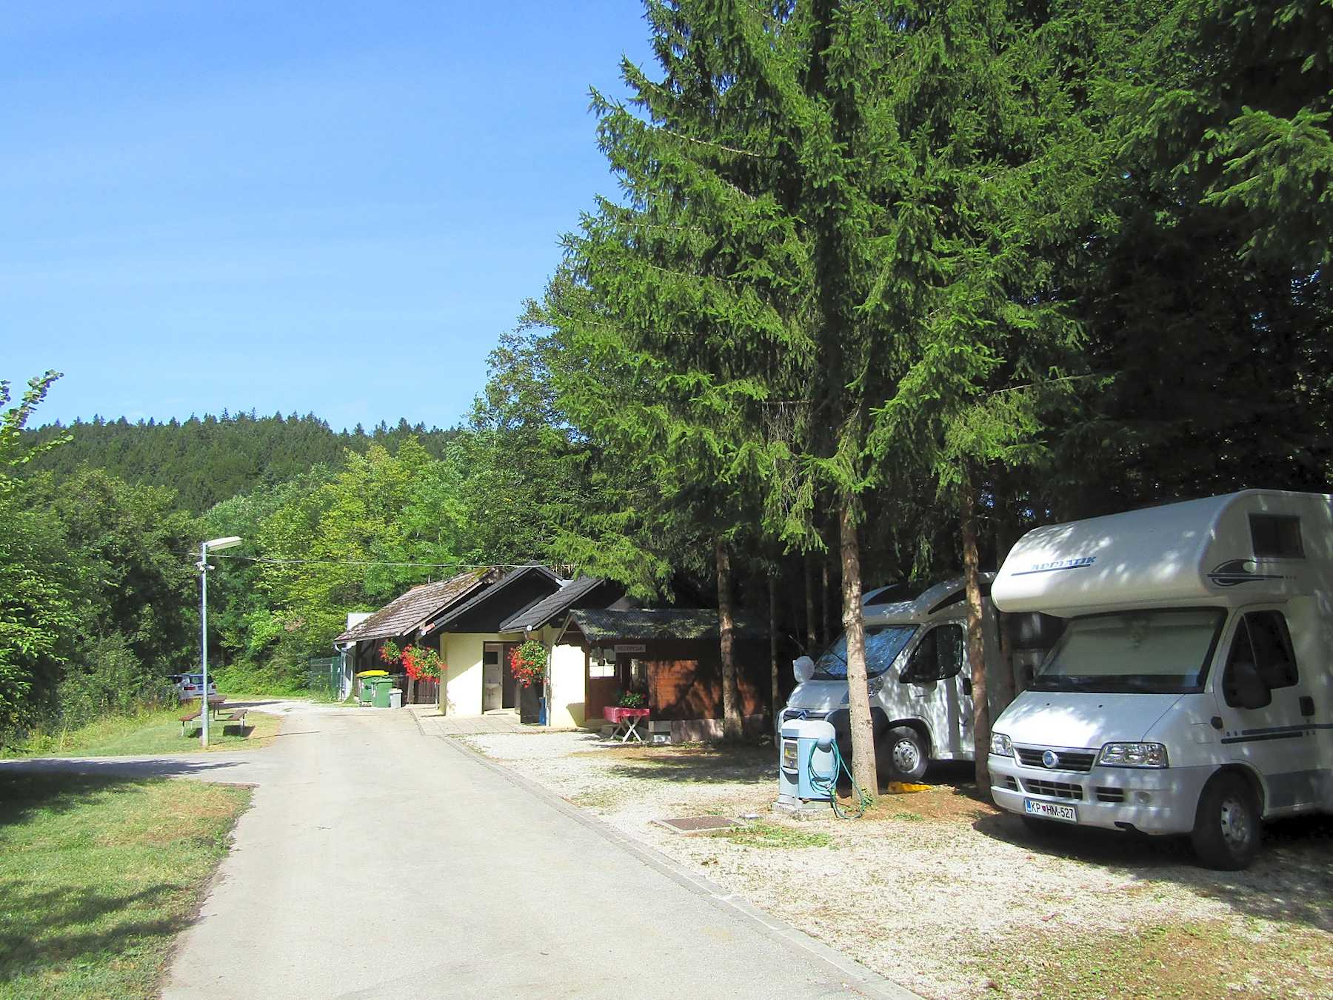 Dolenjske Toplice camping is one of the best Slovenian campsites